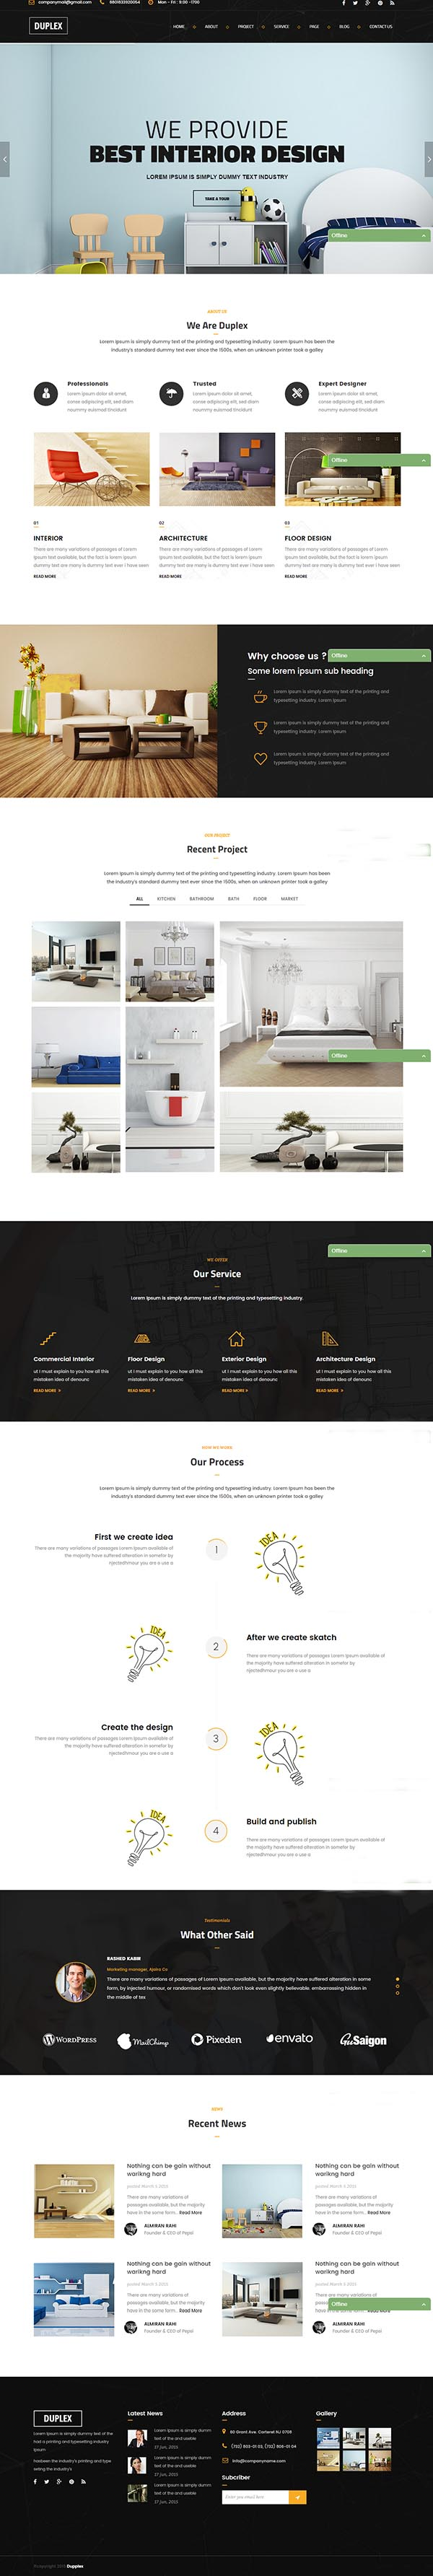 Duplex - Interior Design HTML5 Template